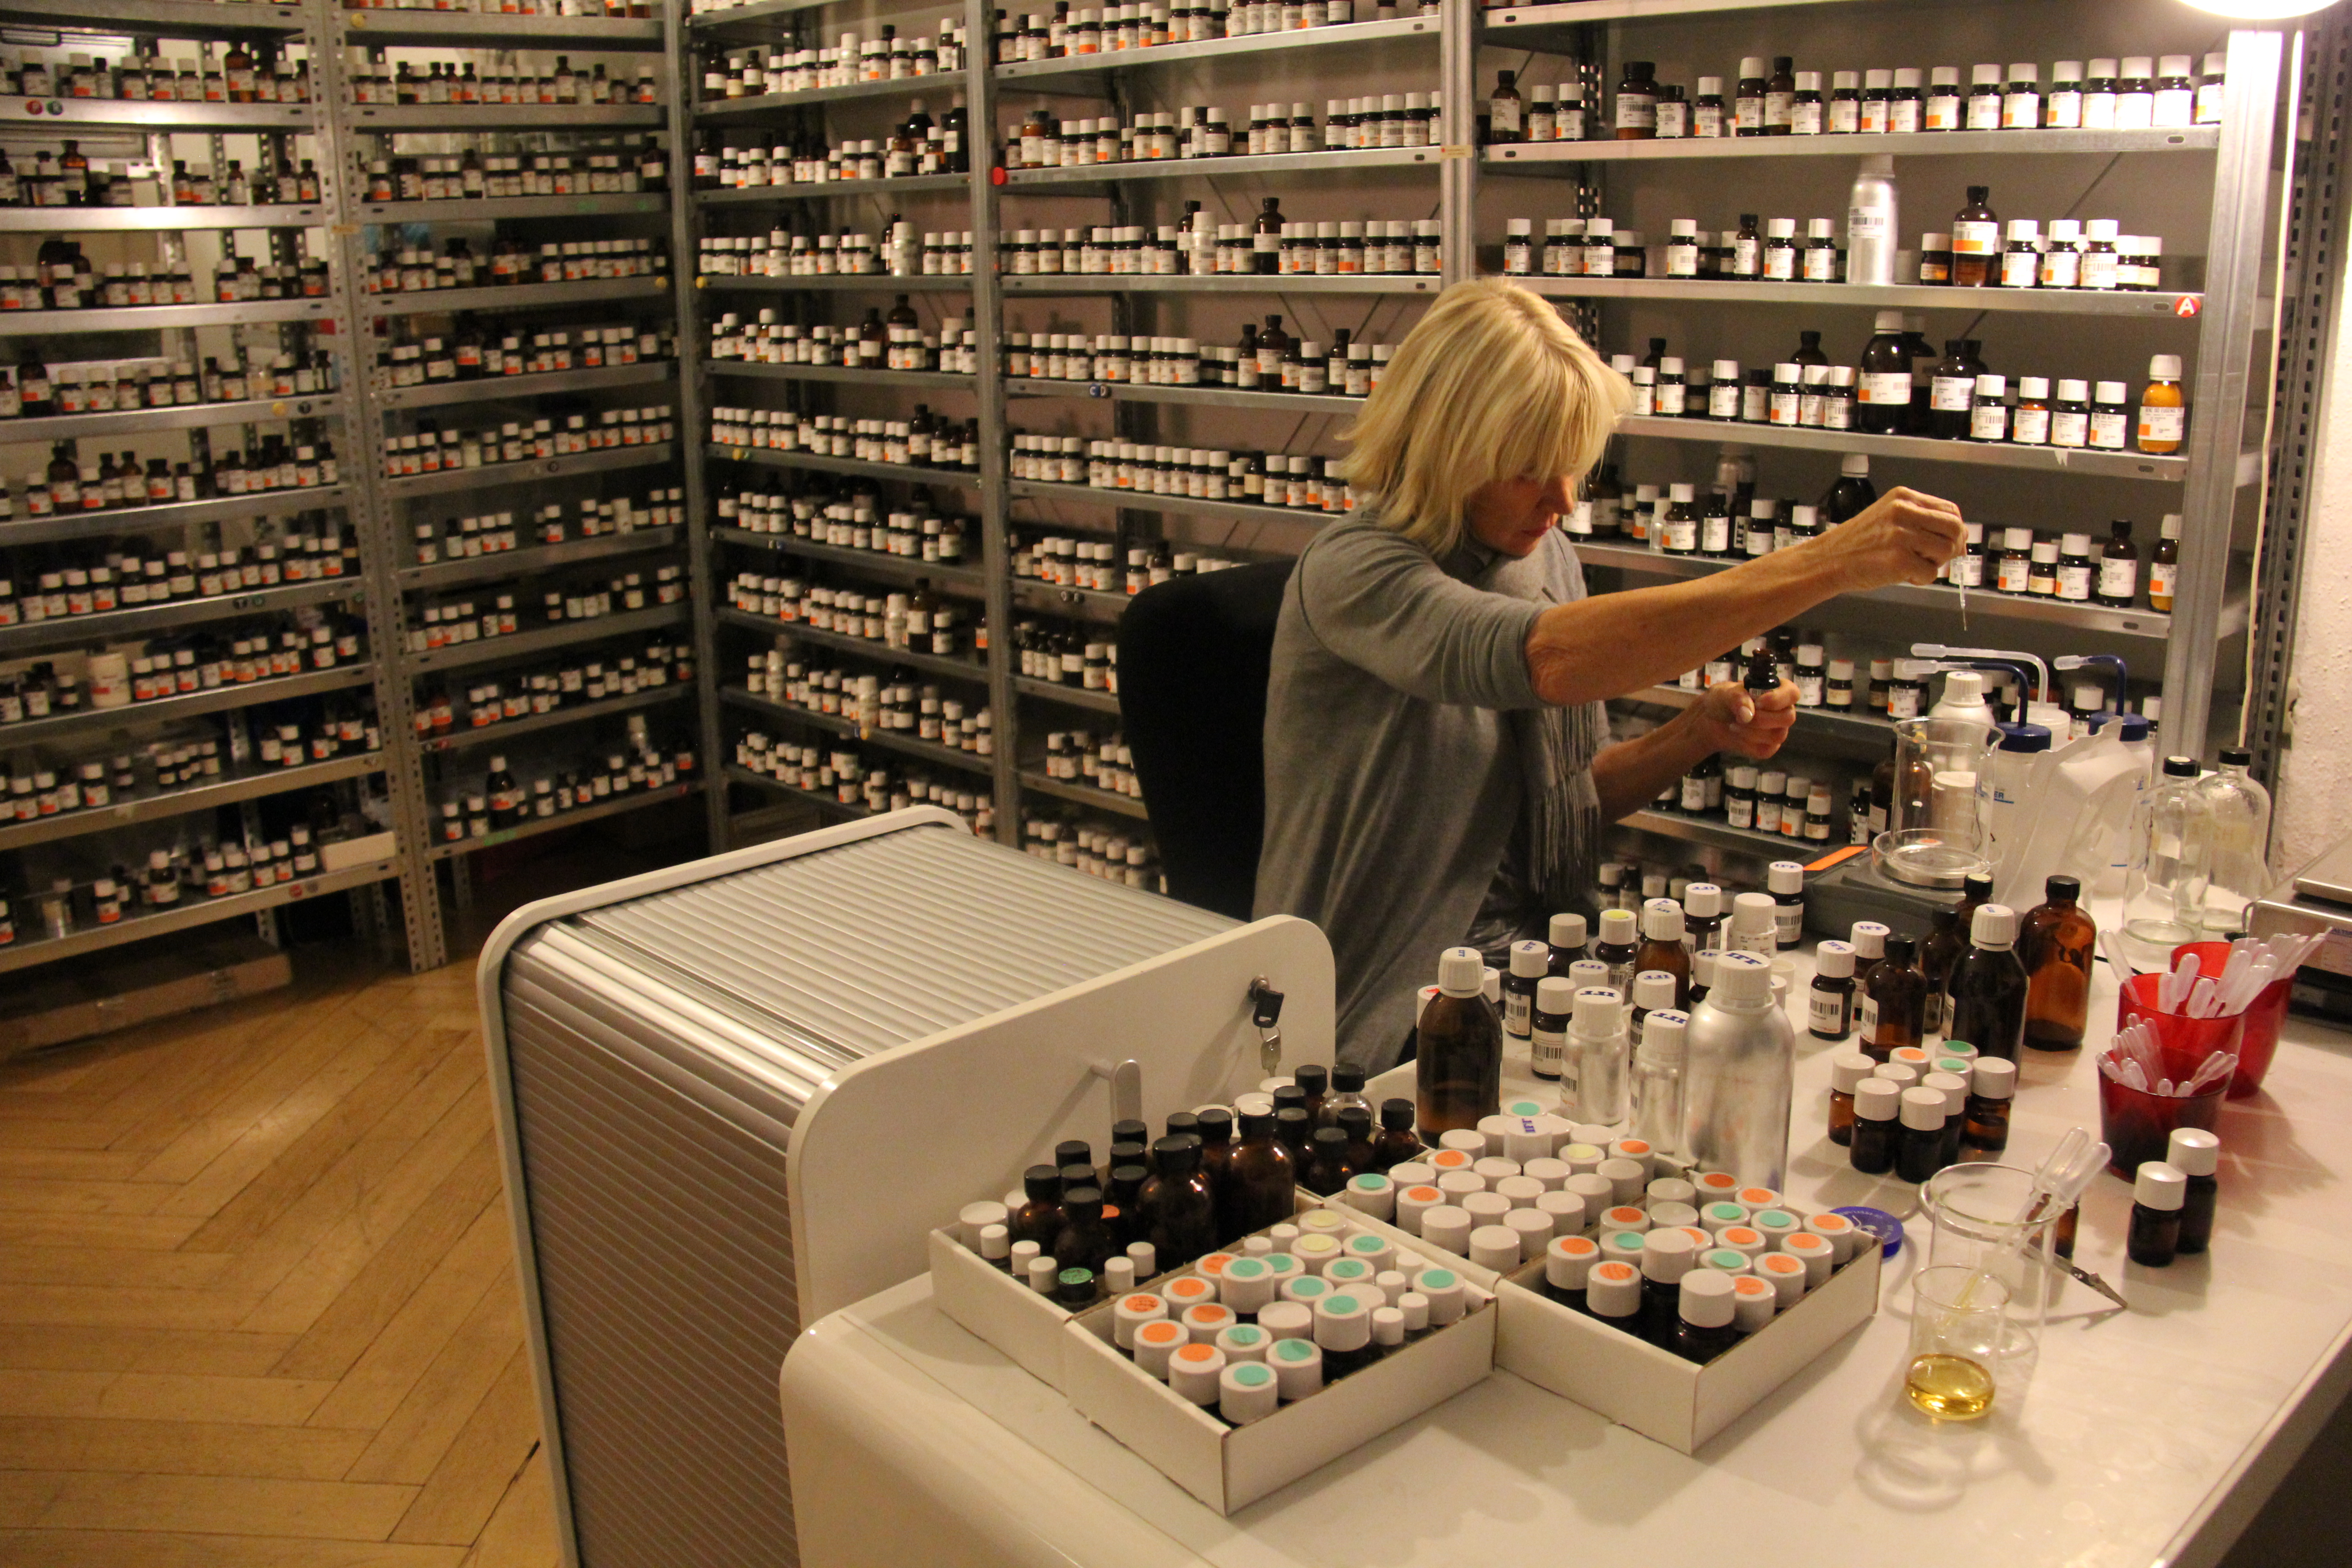 Sissel Tolaas im Smell Re_search Lab, Berlin-Wilmersdorf, 2009